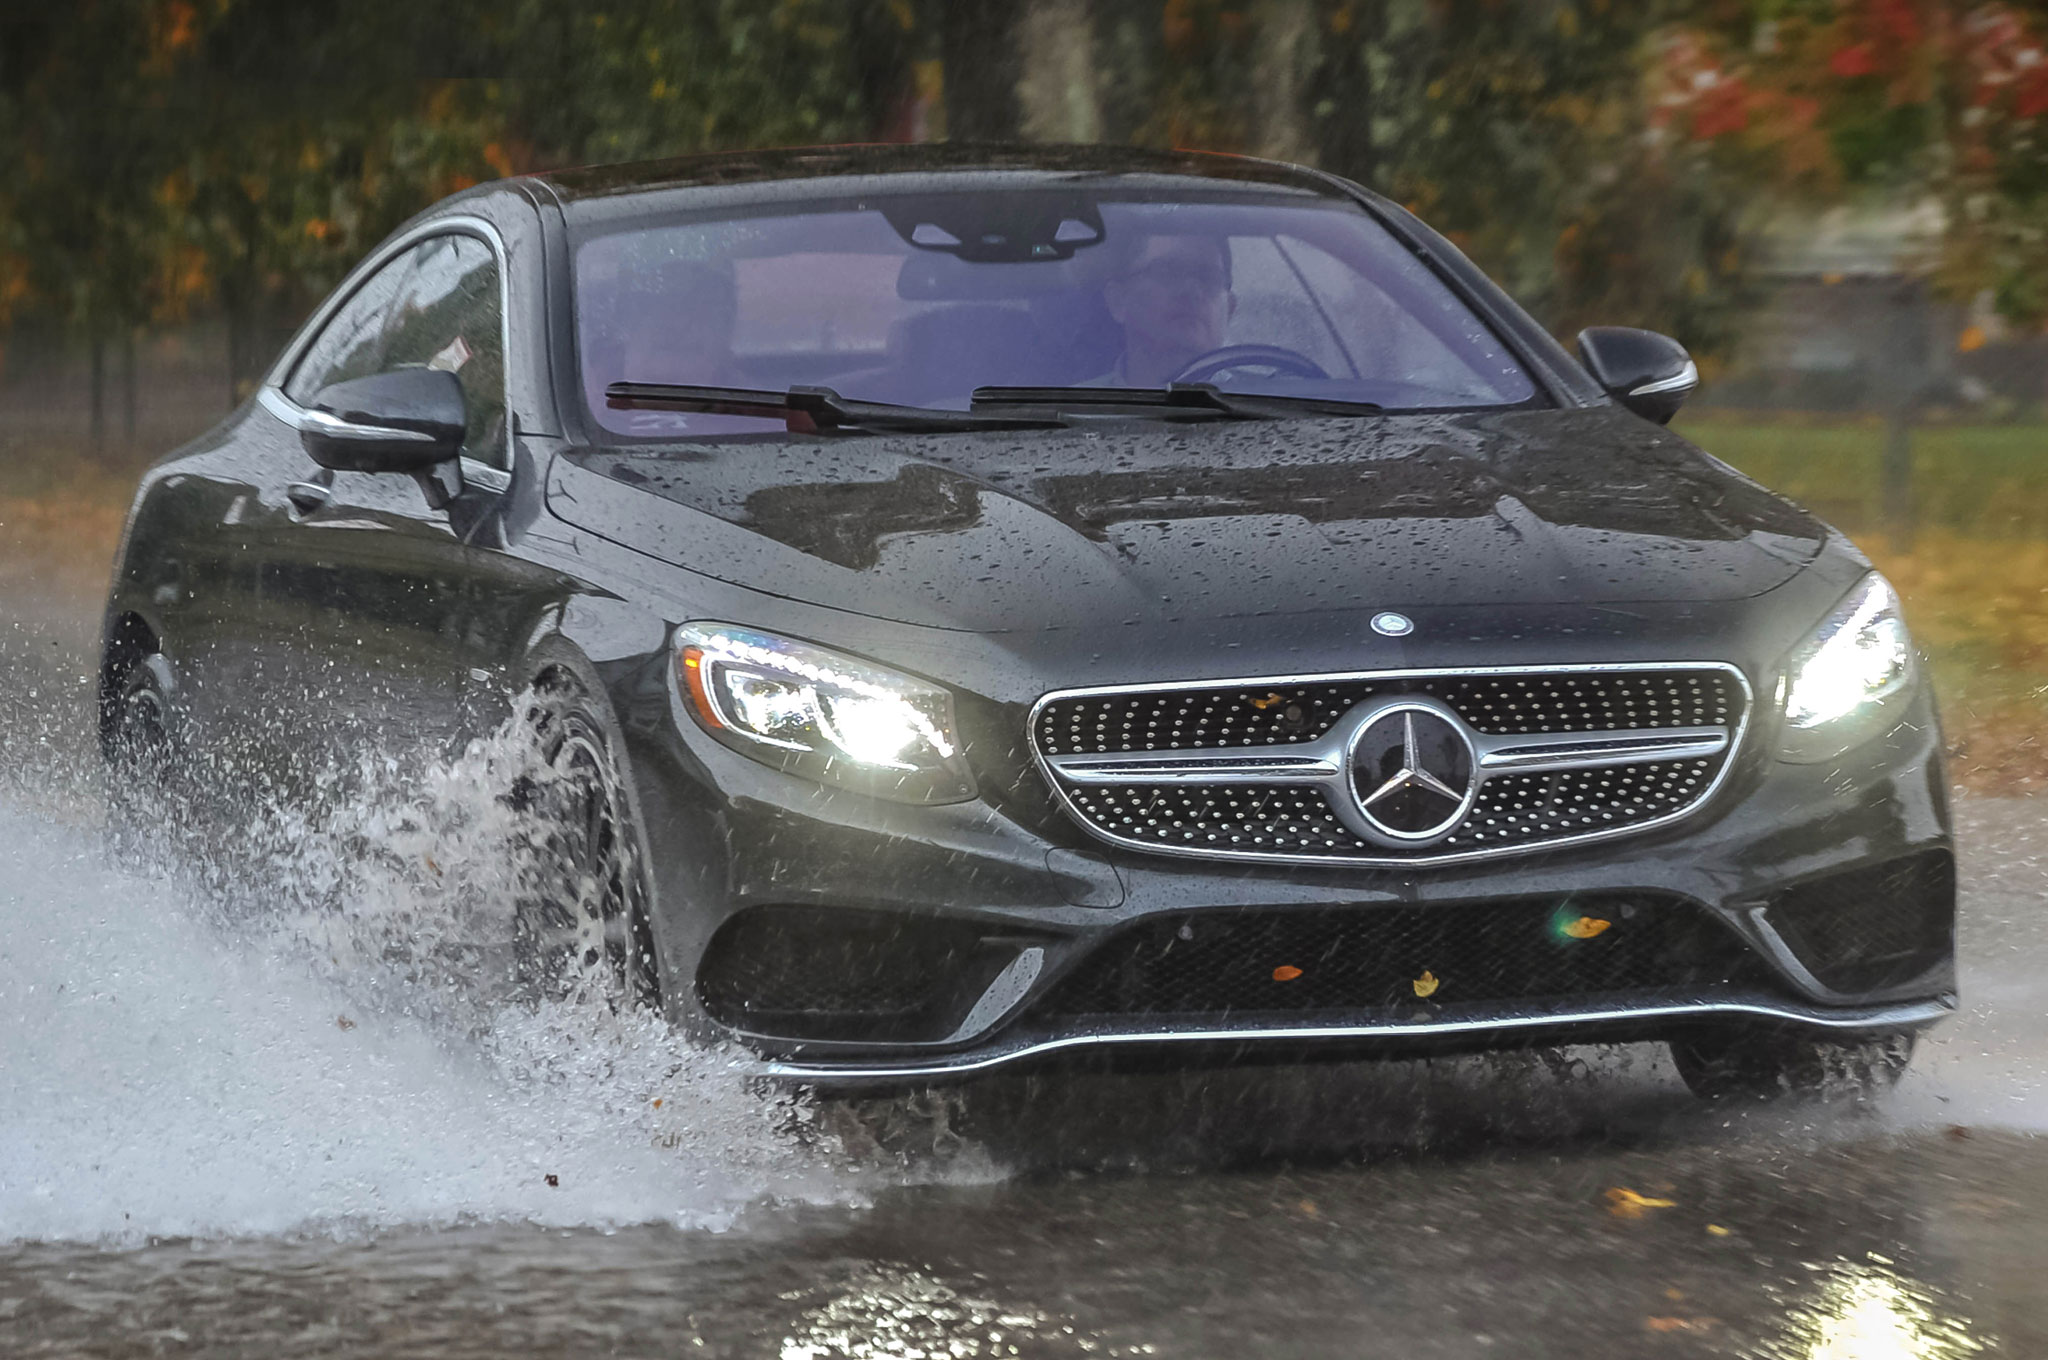 https://st.automobilemag.com/uploads/sites/11/2015/07/2015-Mercedes-Benz-S550-coupe-front-three-quarter-view-in-motion-3.jpg